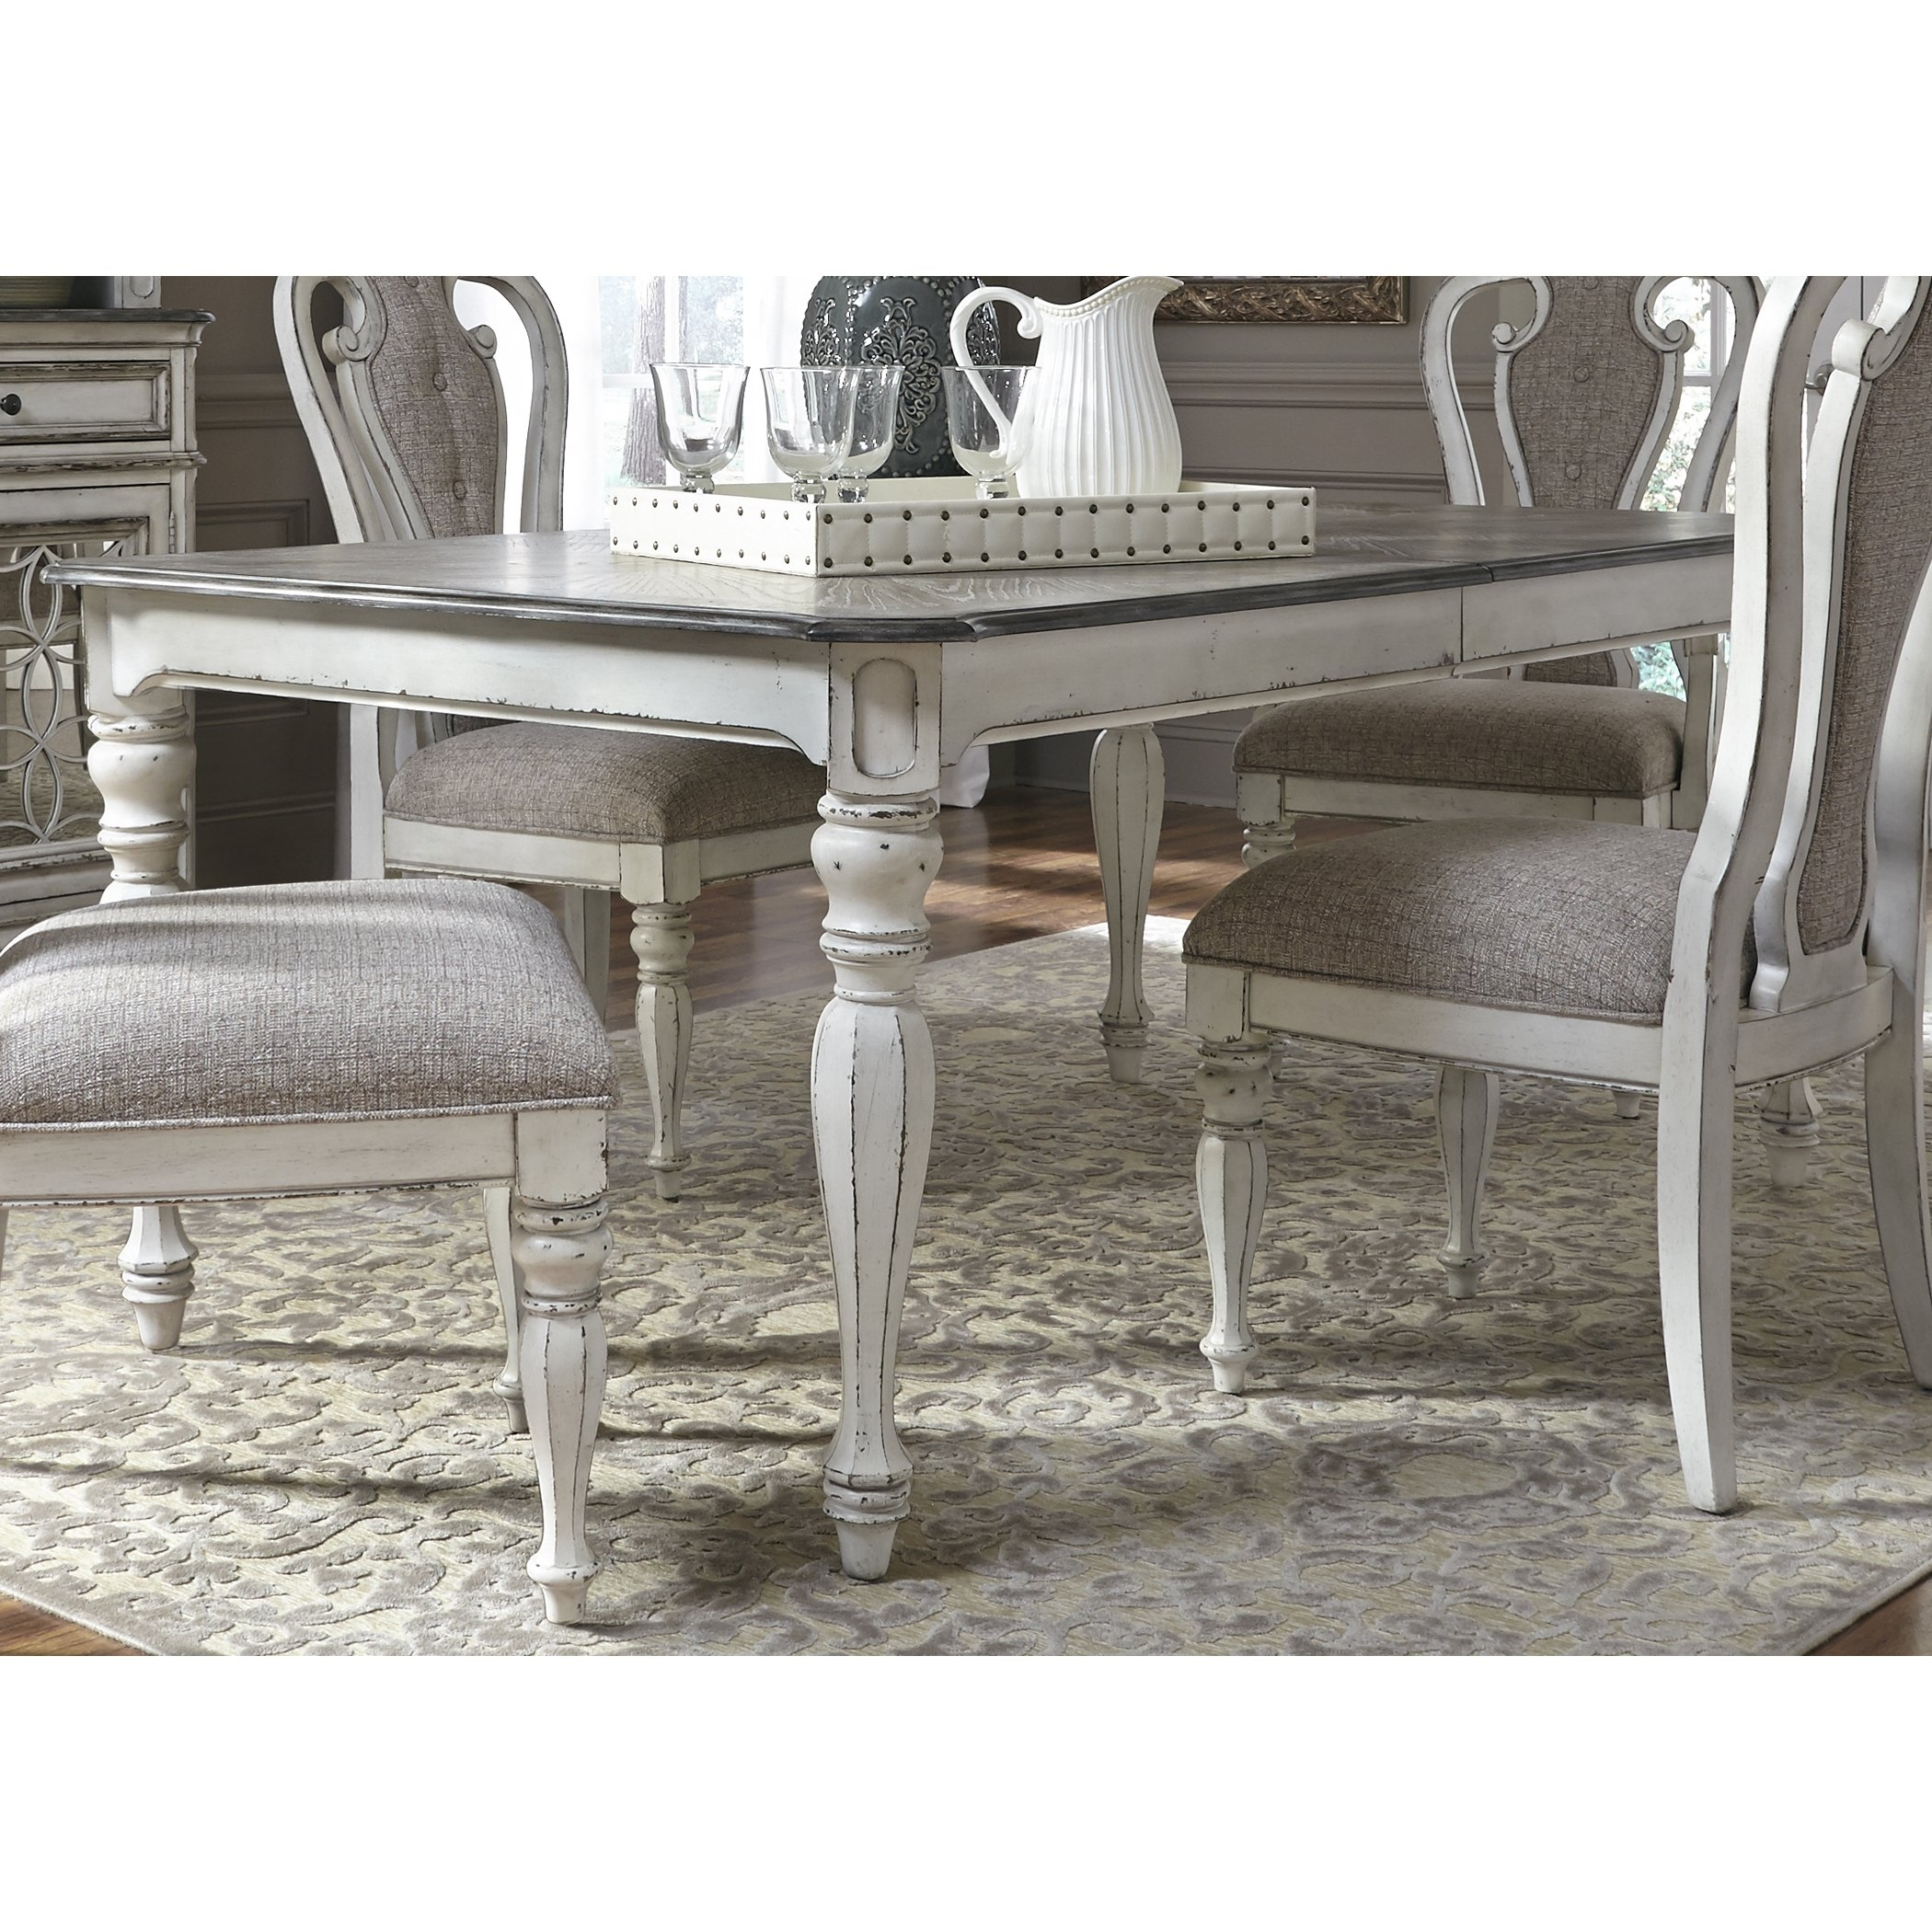 Magnolia Manor Antique White 44X108 Dinette Table – Antique White With Regard To Recent Magnolia Home Breakfast Round Black Dining Tables (Photo 19 of 20)